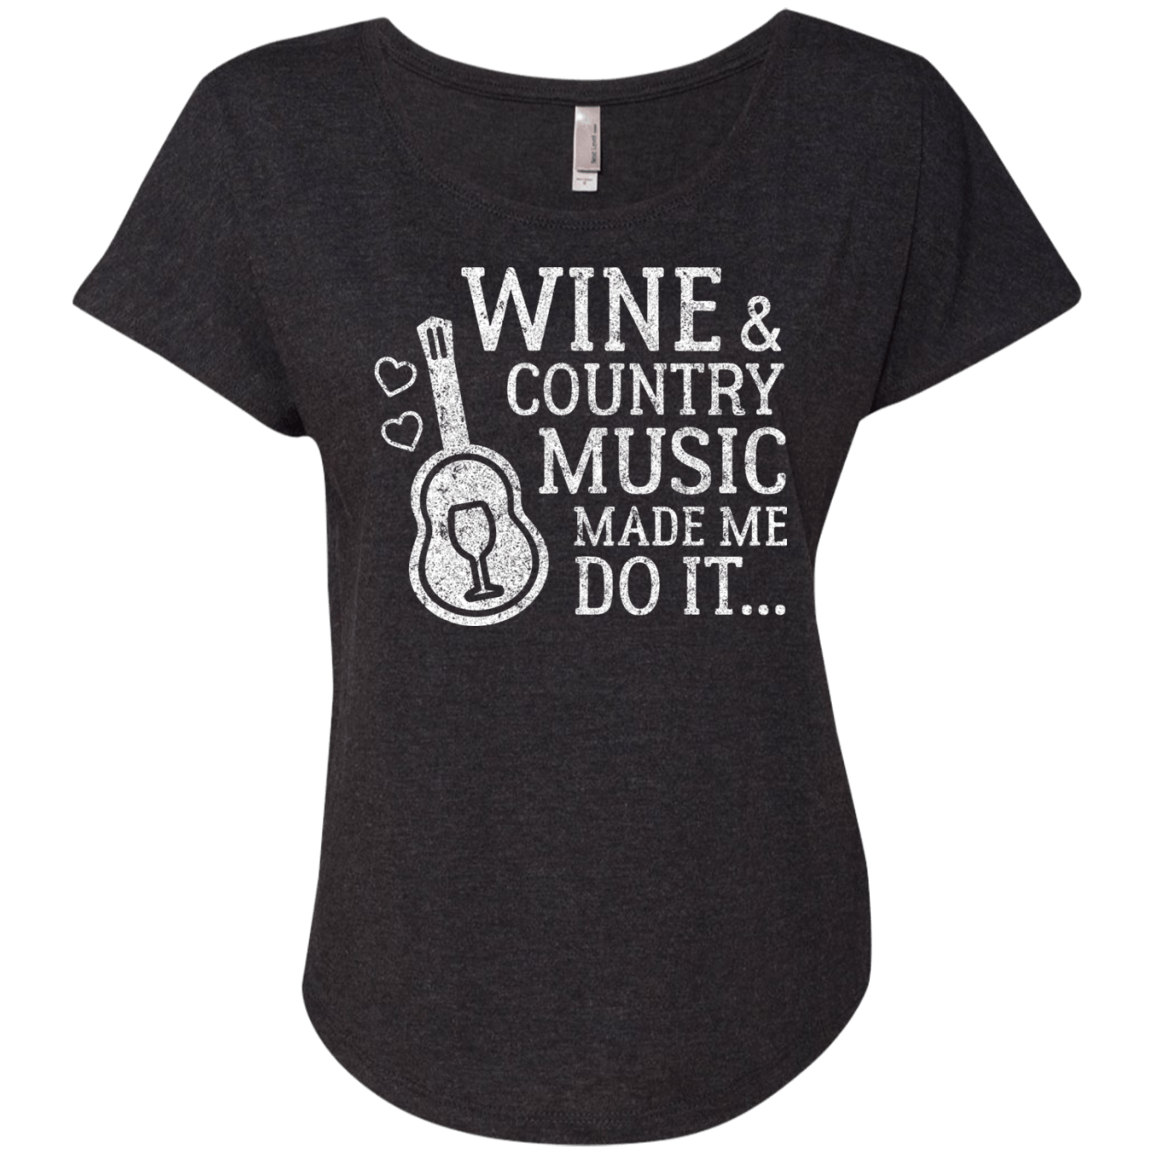 Wine & Country Music Made Me Do It